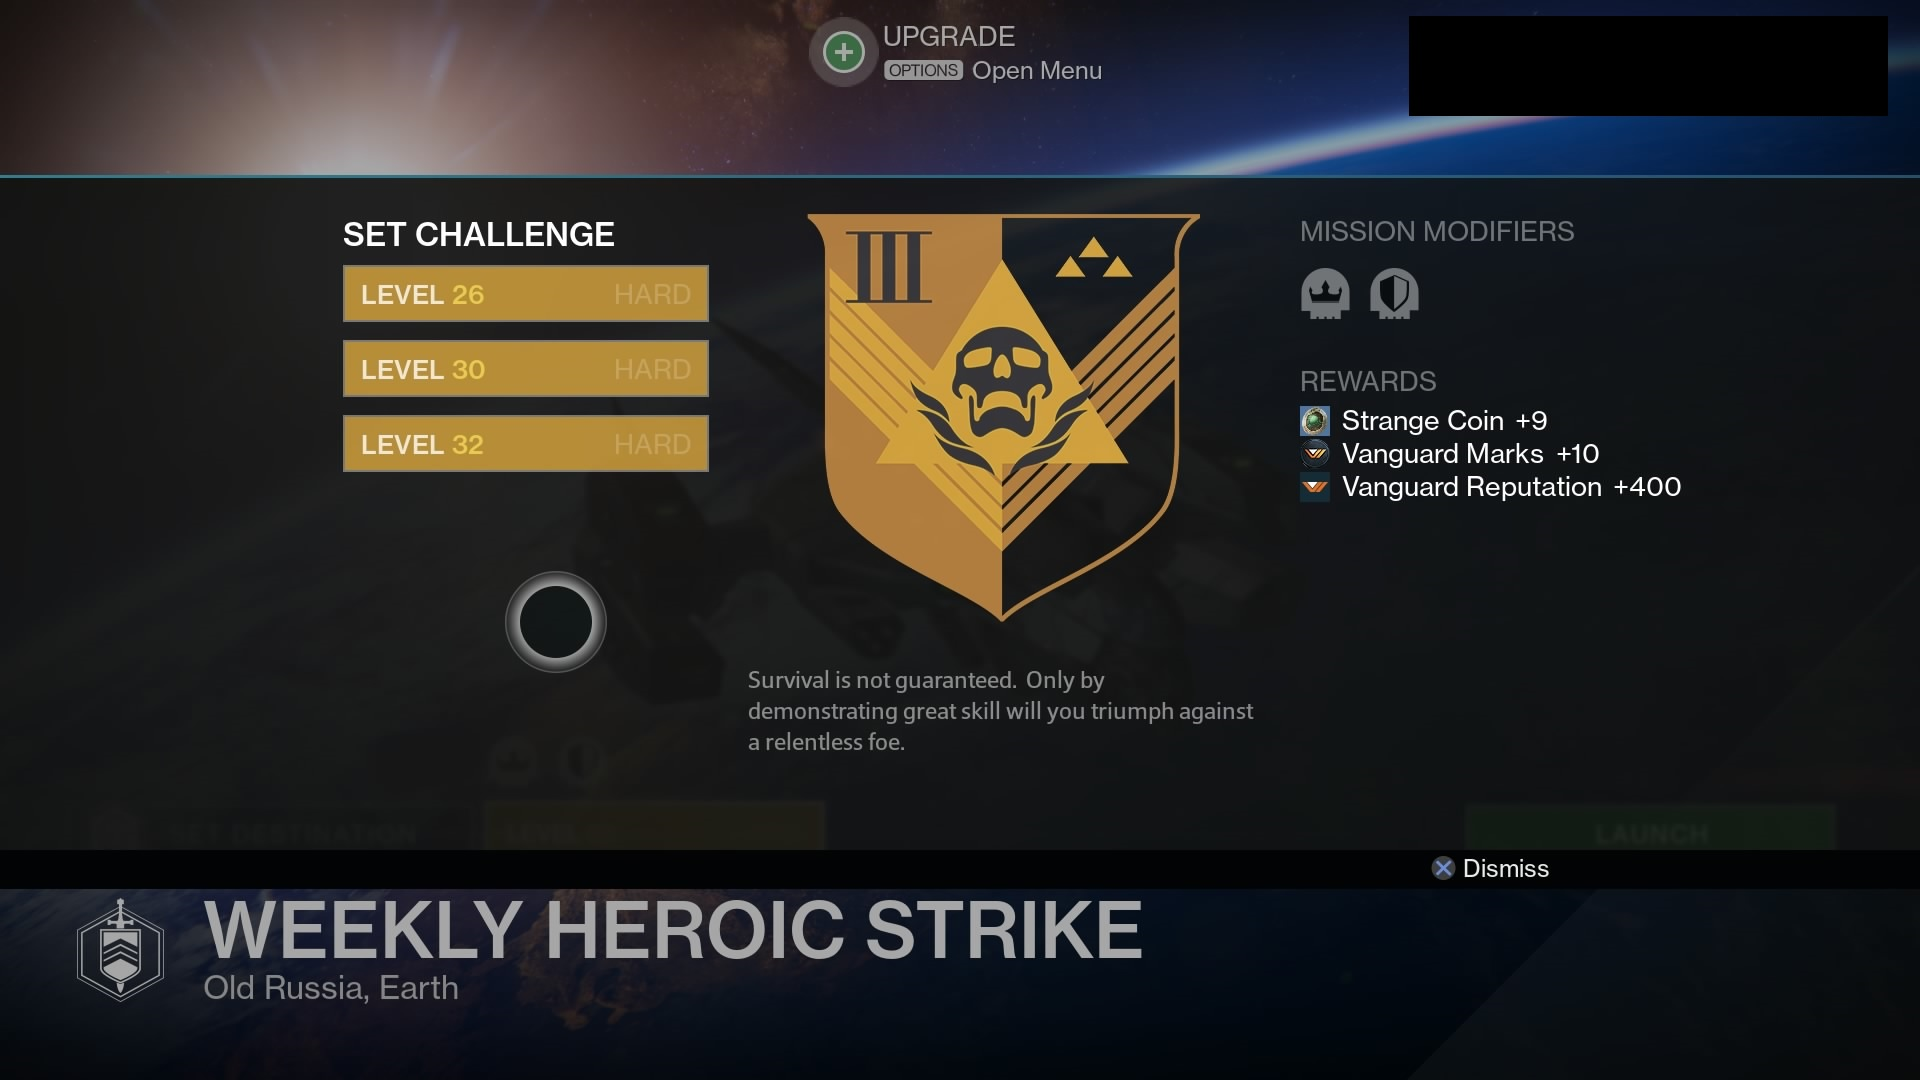 Destiny Matchmaking for Weekly Heroic Strikes Works Fine